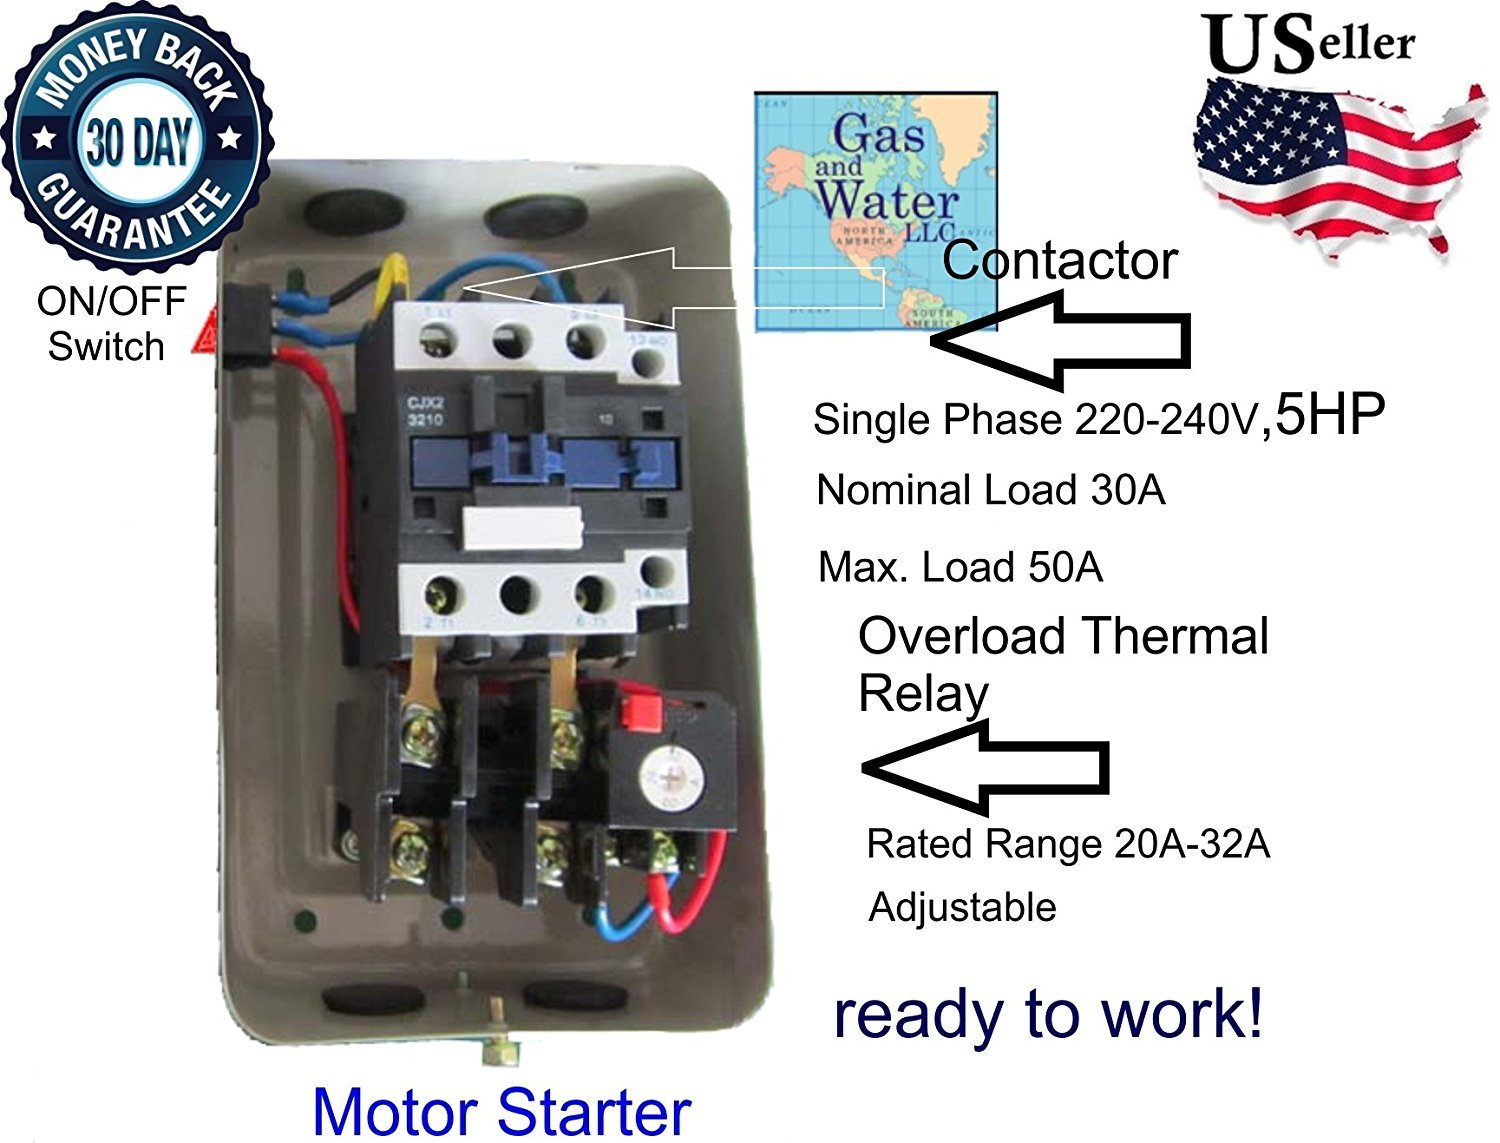 Best Rated In Electric Motors Helpful Customer Reviews Motor Diagram As Well Access Control Door Contact Electrical Magnetic Starter 5 Hp Single Phase 220 240v 22 34a With